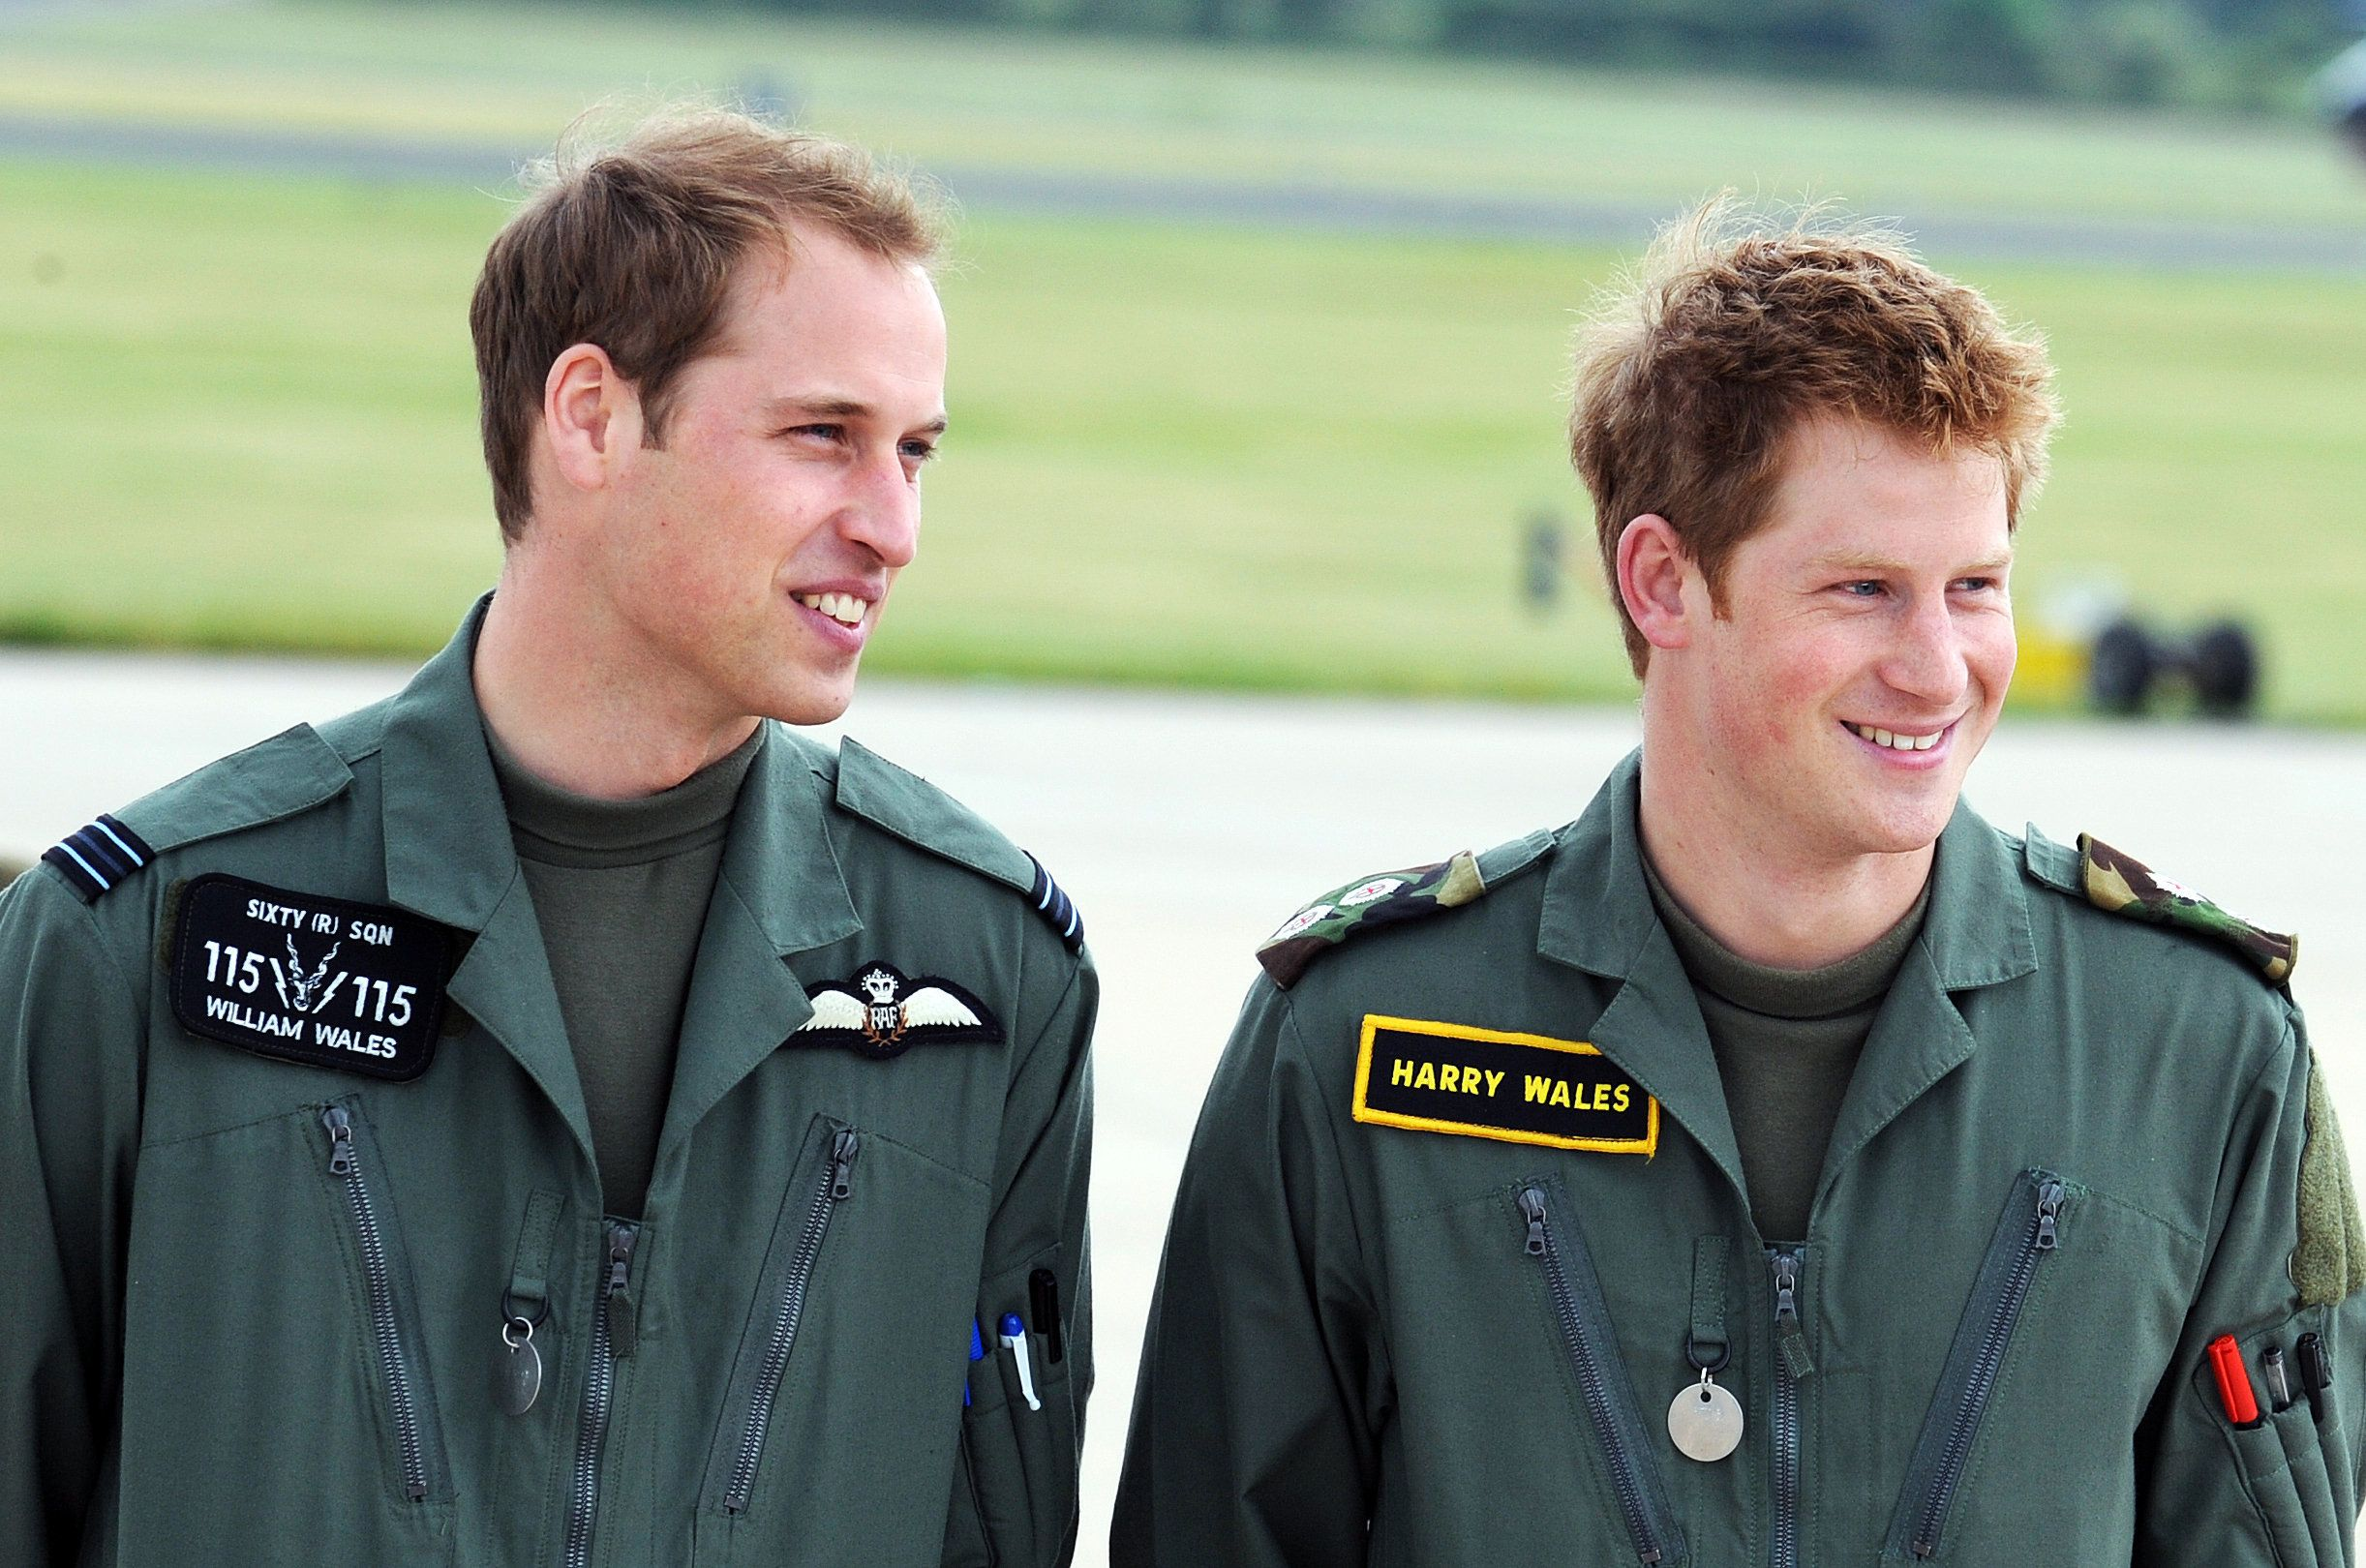 Prince William and Prince Harry on June 18, 2009, in Shawbury, England.